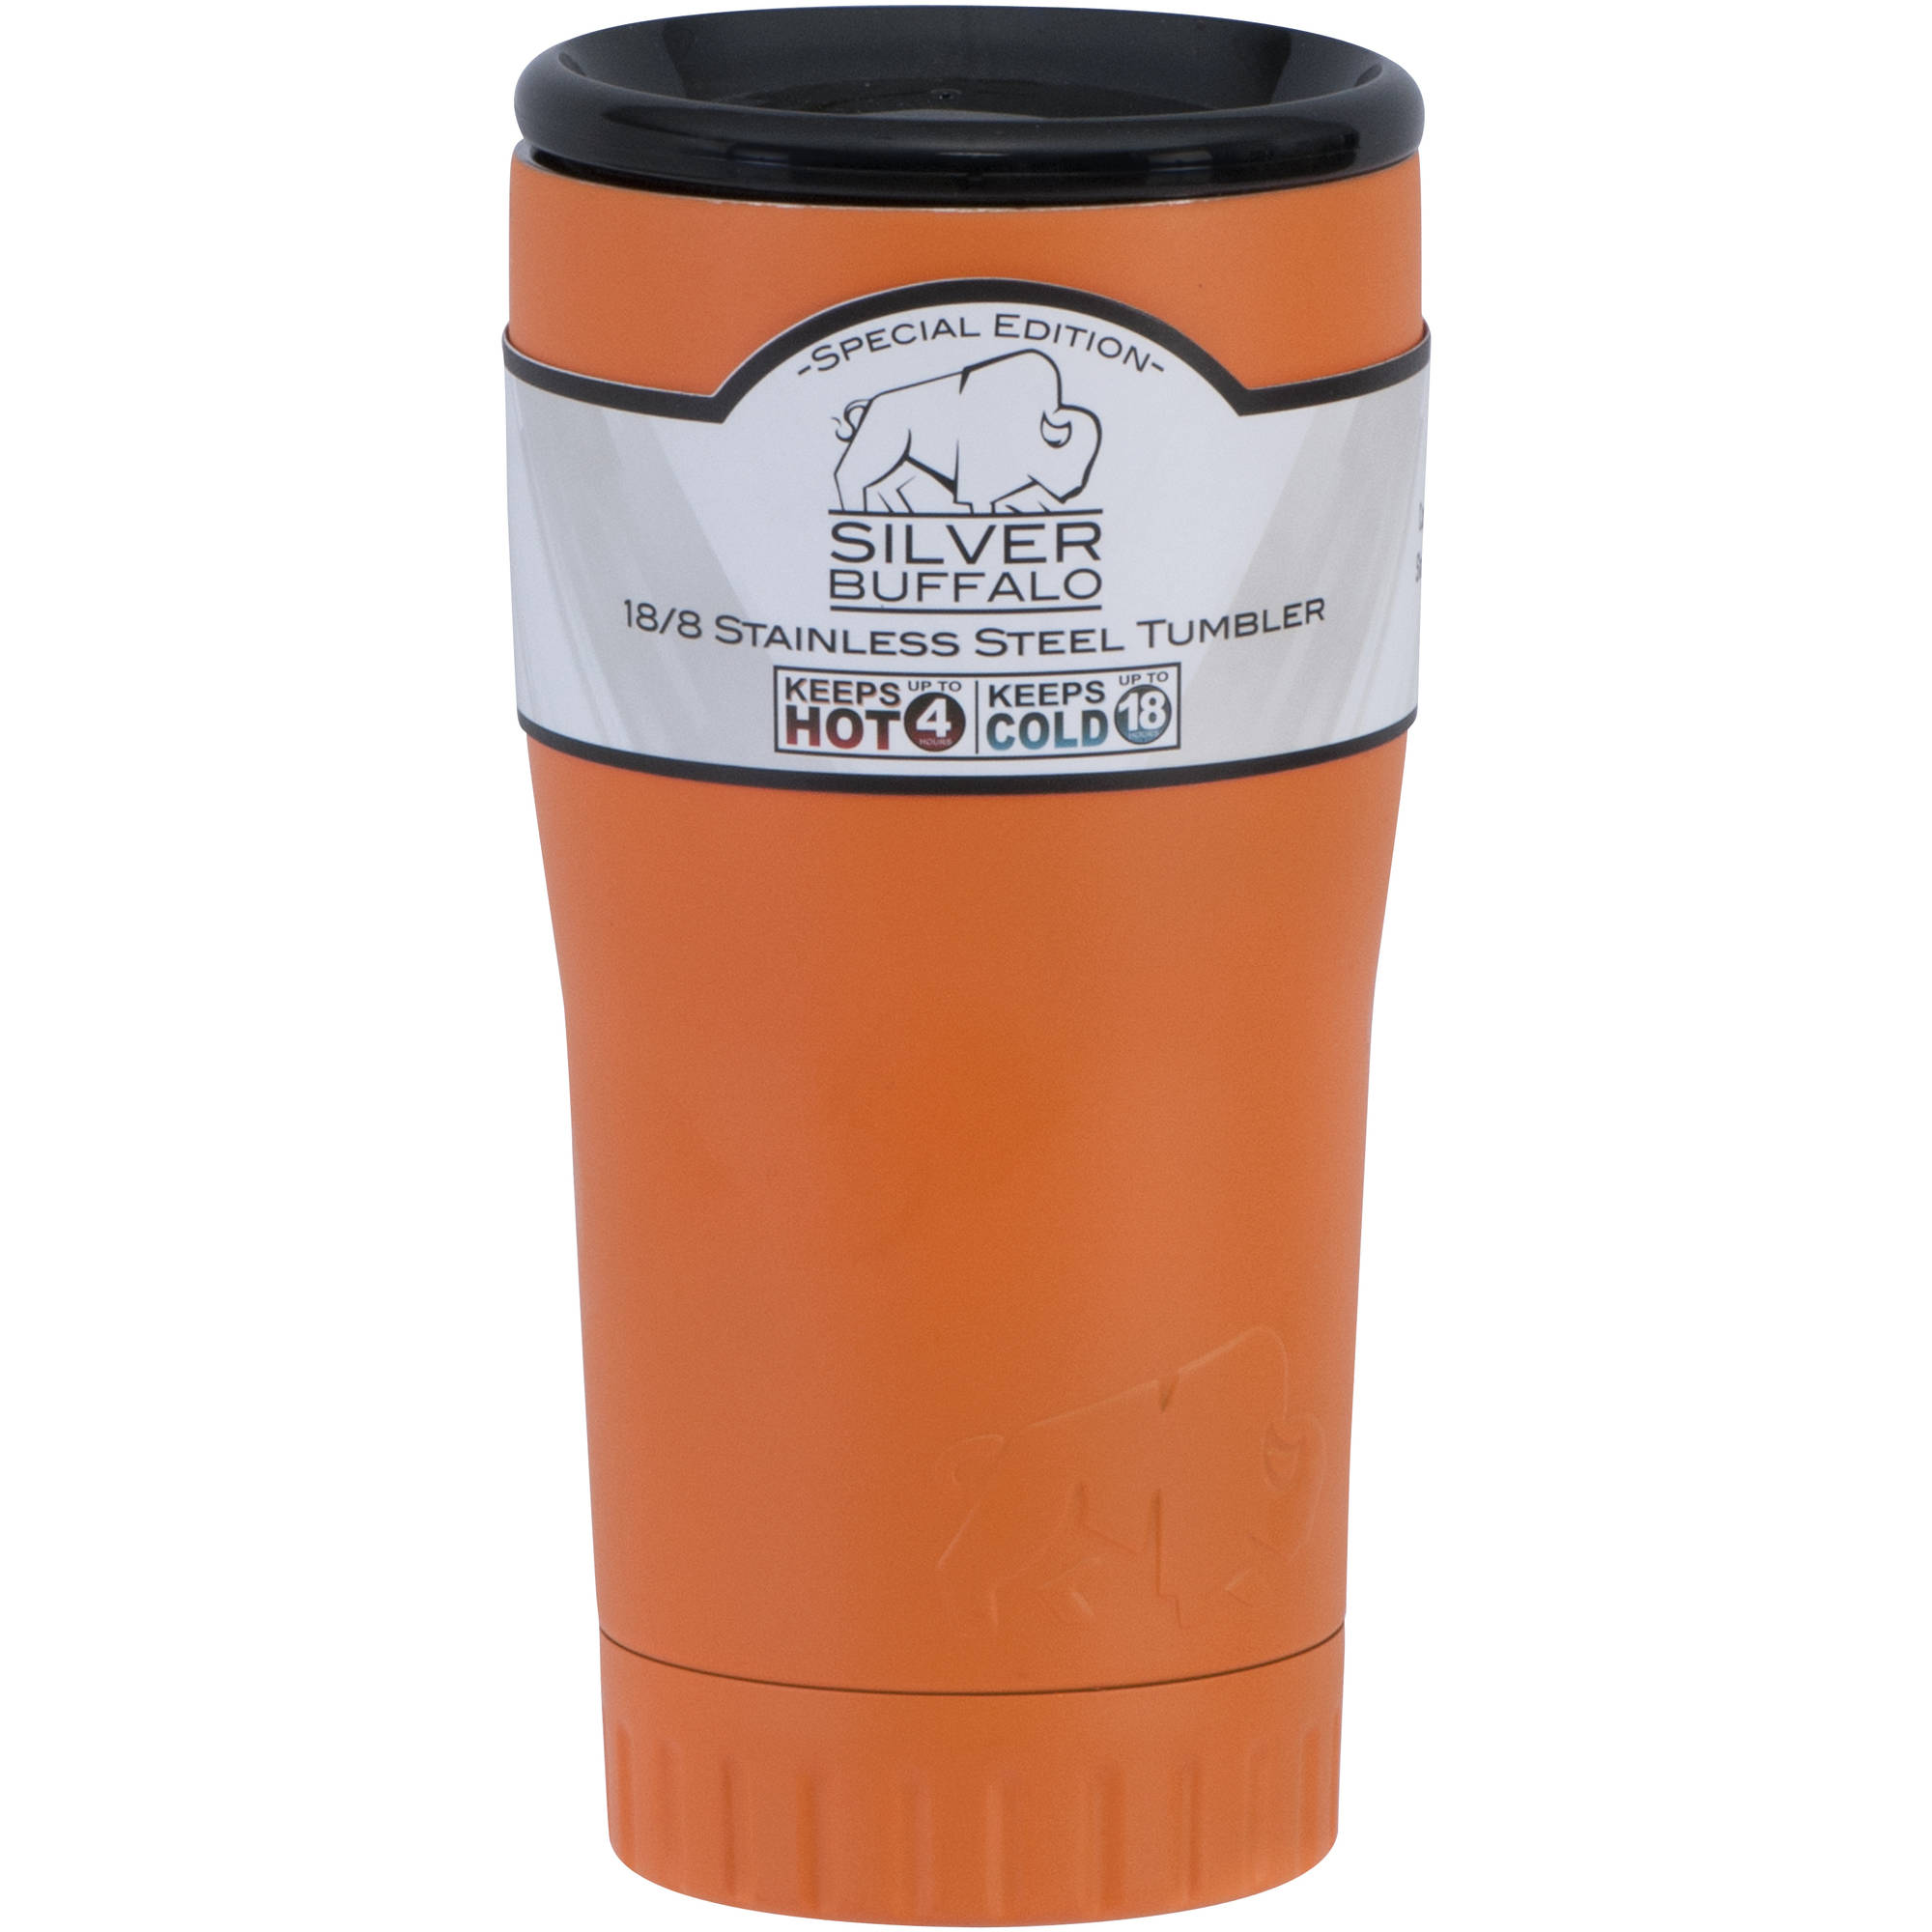 20 oz Stainless Steel Tumbler Cup by Silver Buffalo Matte Orange by Generic